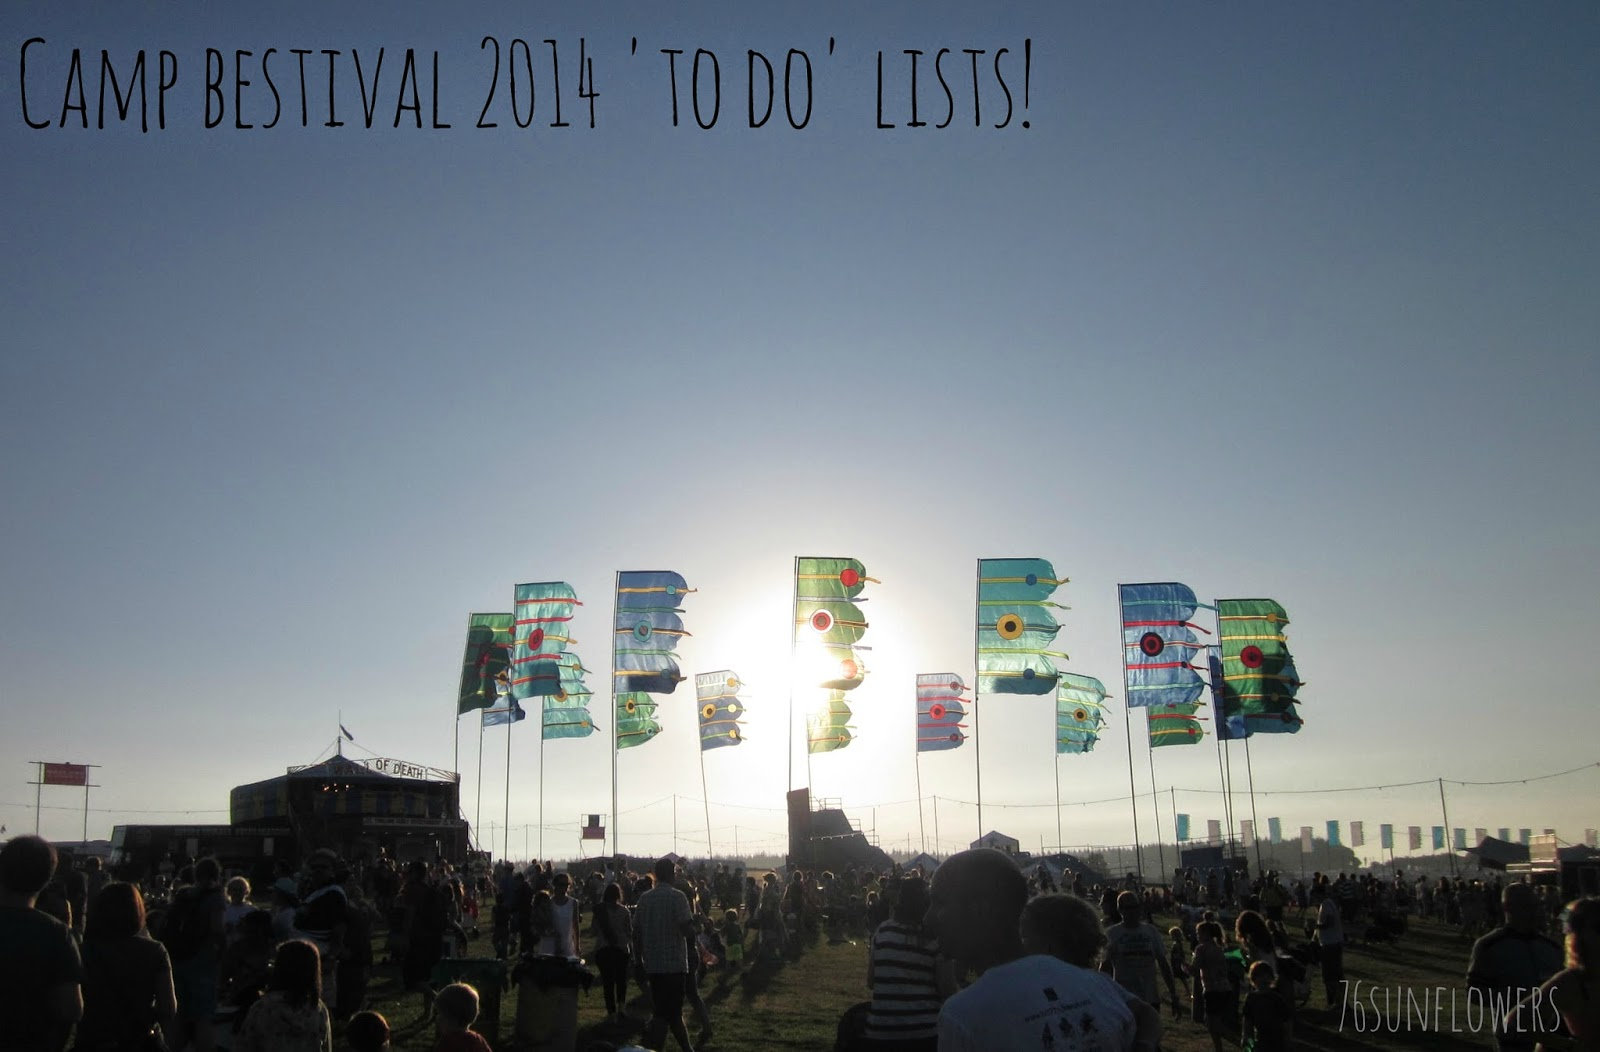 Camp Bestival 2014 'To do' lists! // 76sunflowers